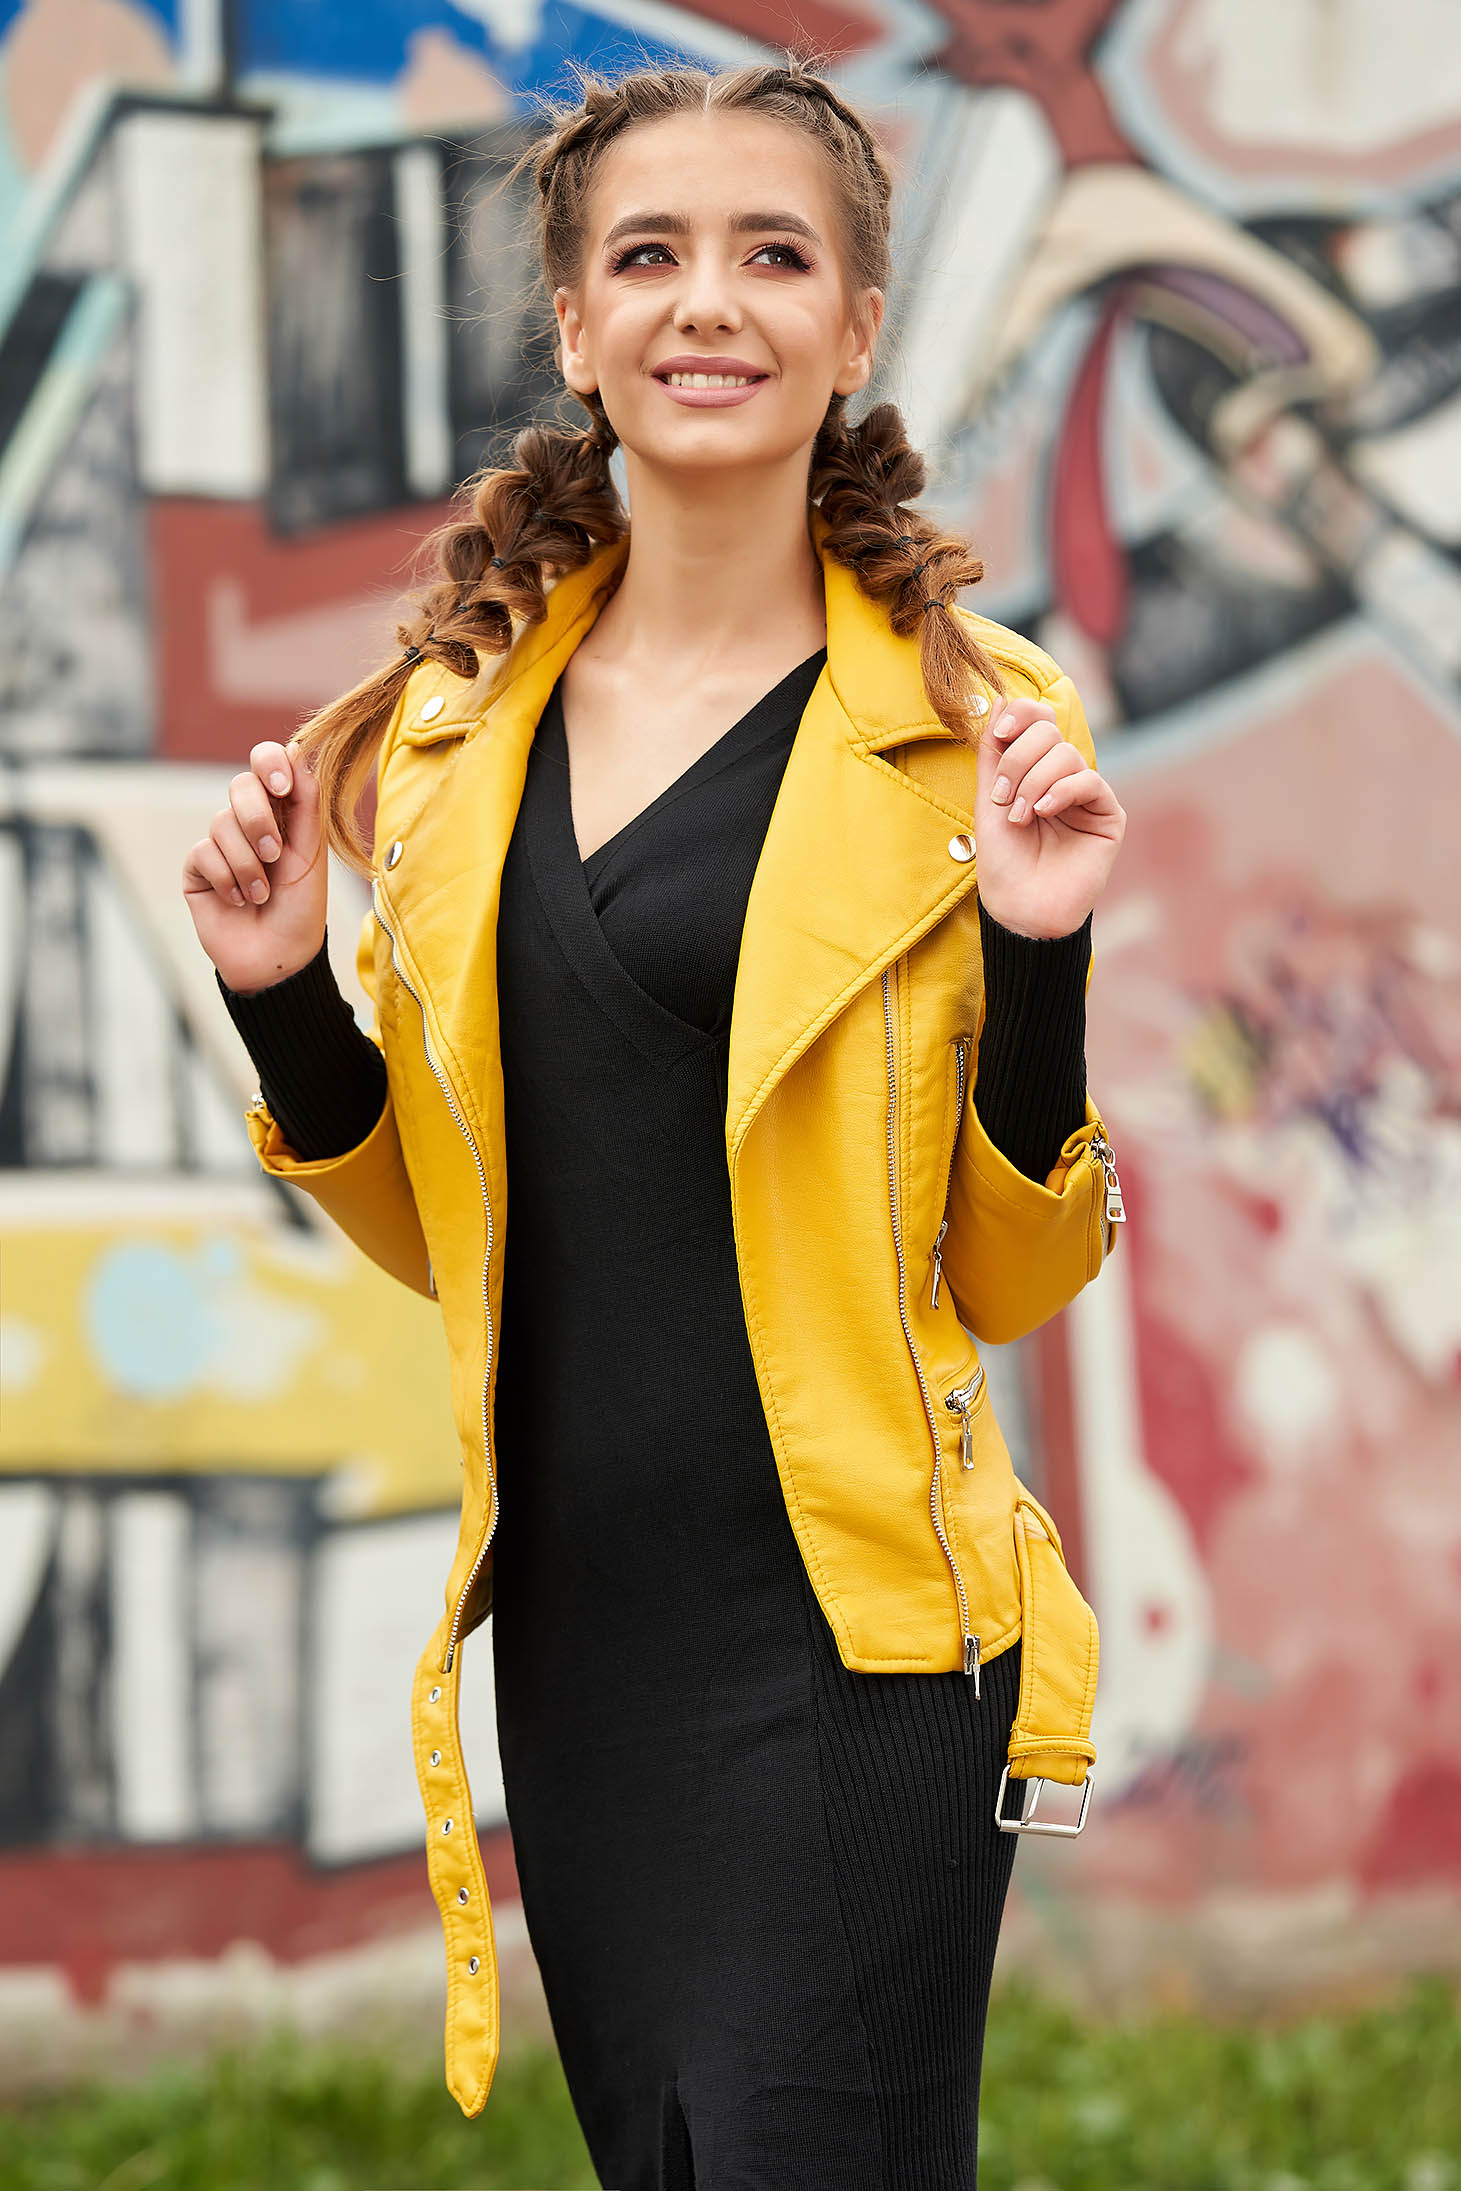 Mustard jacket casual short cut faux leather with zipper details pockets zipped sleeves